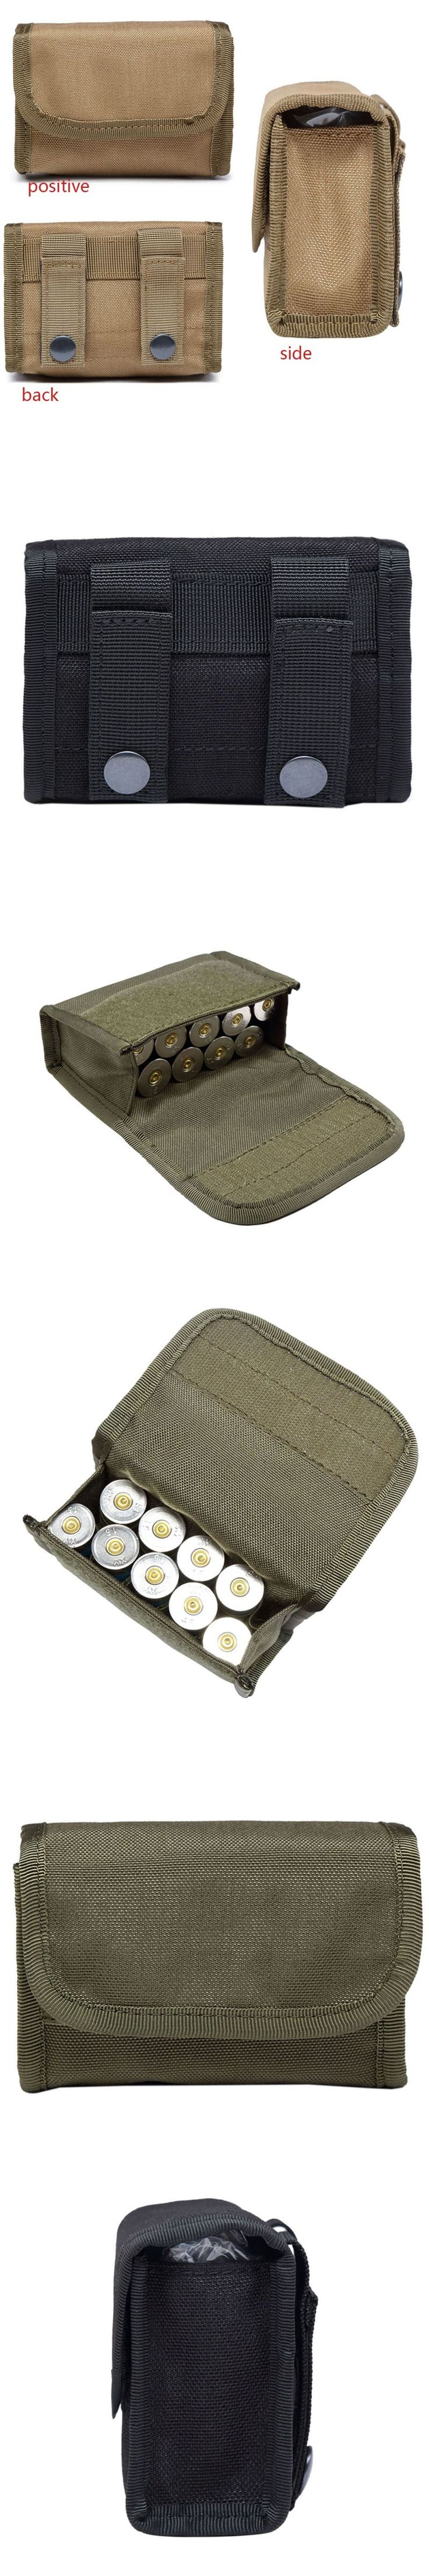 12 Gauge/20G Magazine Pouch Ammo Round Cartridge Holder Tactical 10 Round Shotshell Reload Holder Molle Pouch Tactical Bag